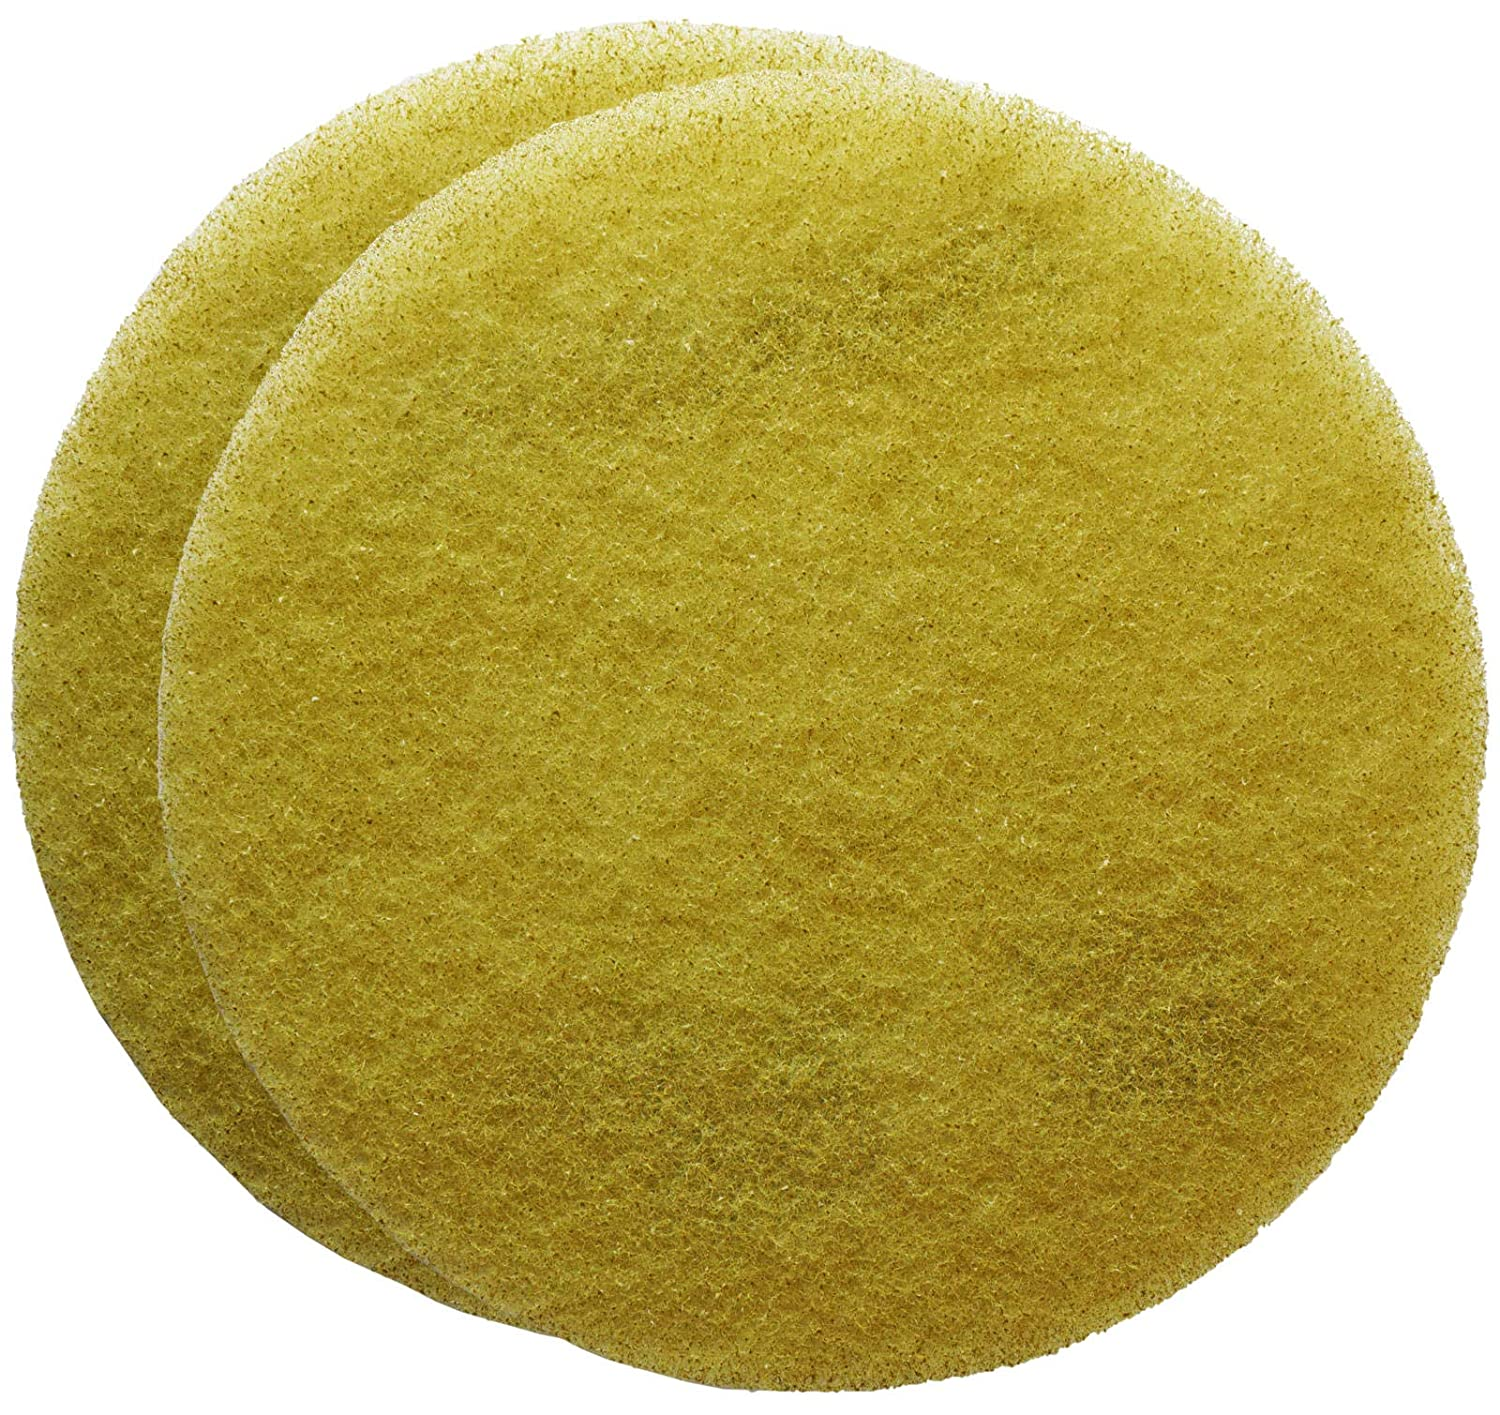 FLEXIS KGS Floor Cleaning & polishing Pads 11 inch grit 1500 - Yellow (2 Pack)